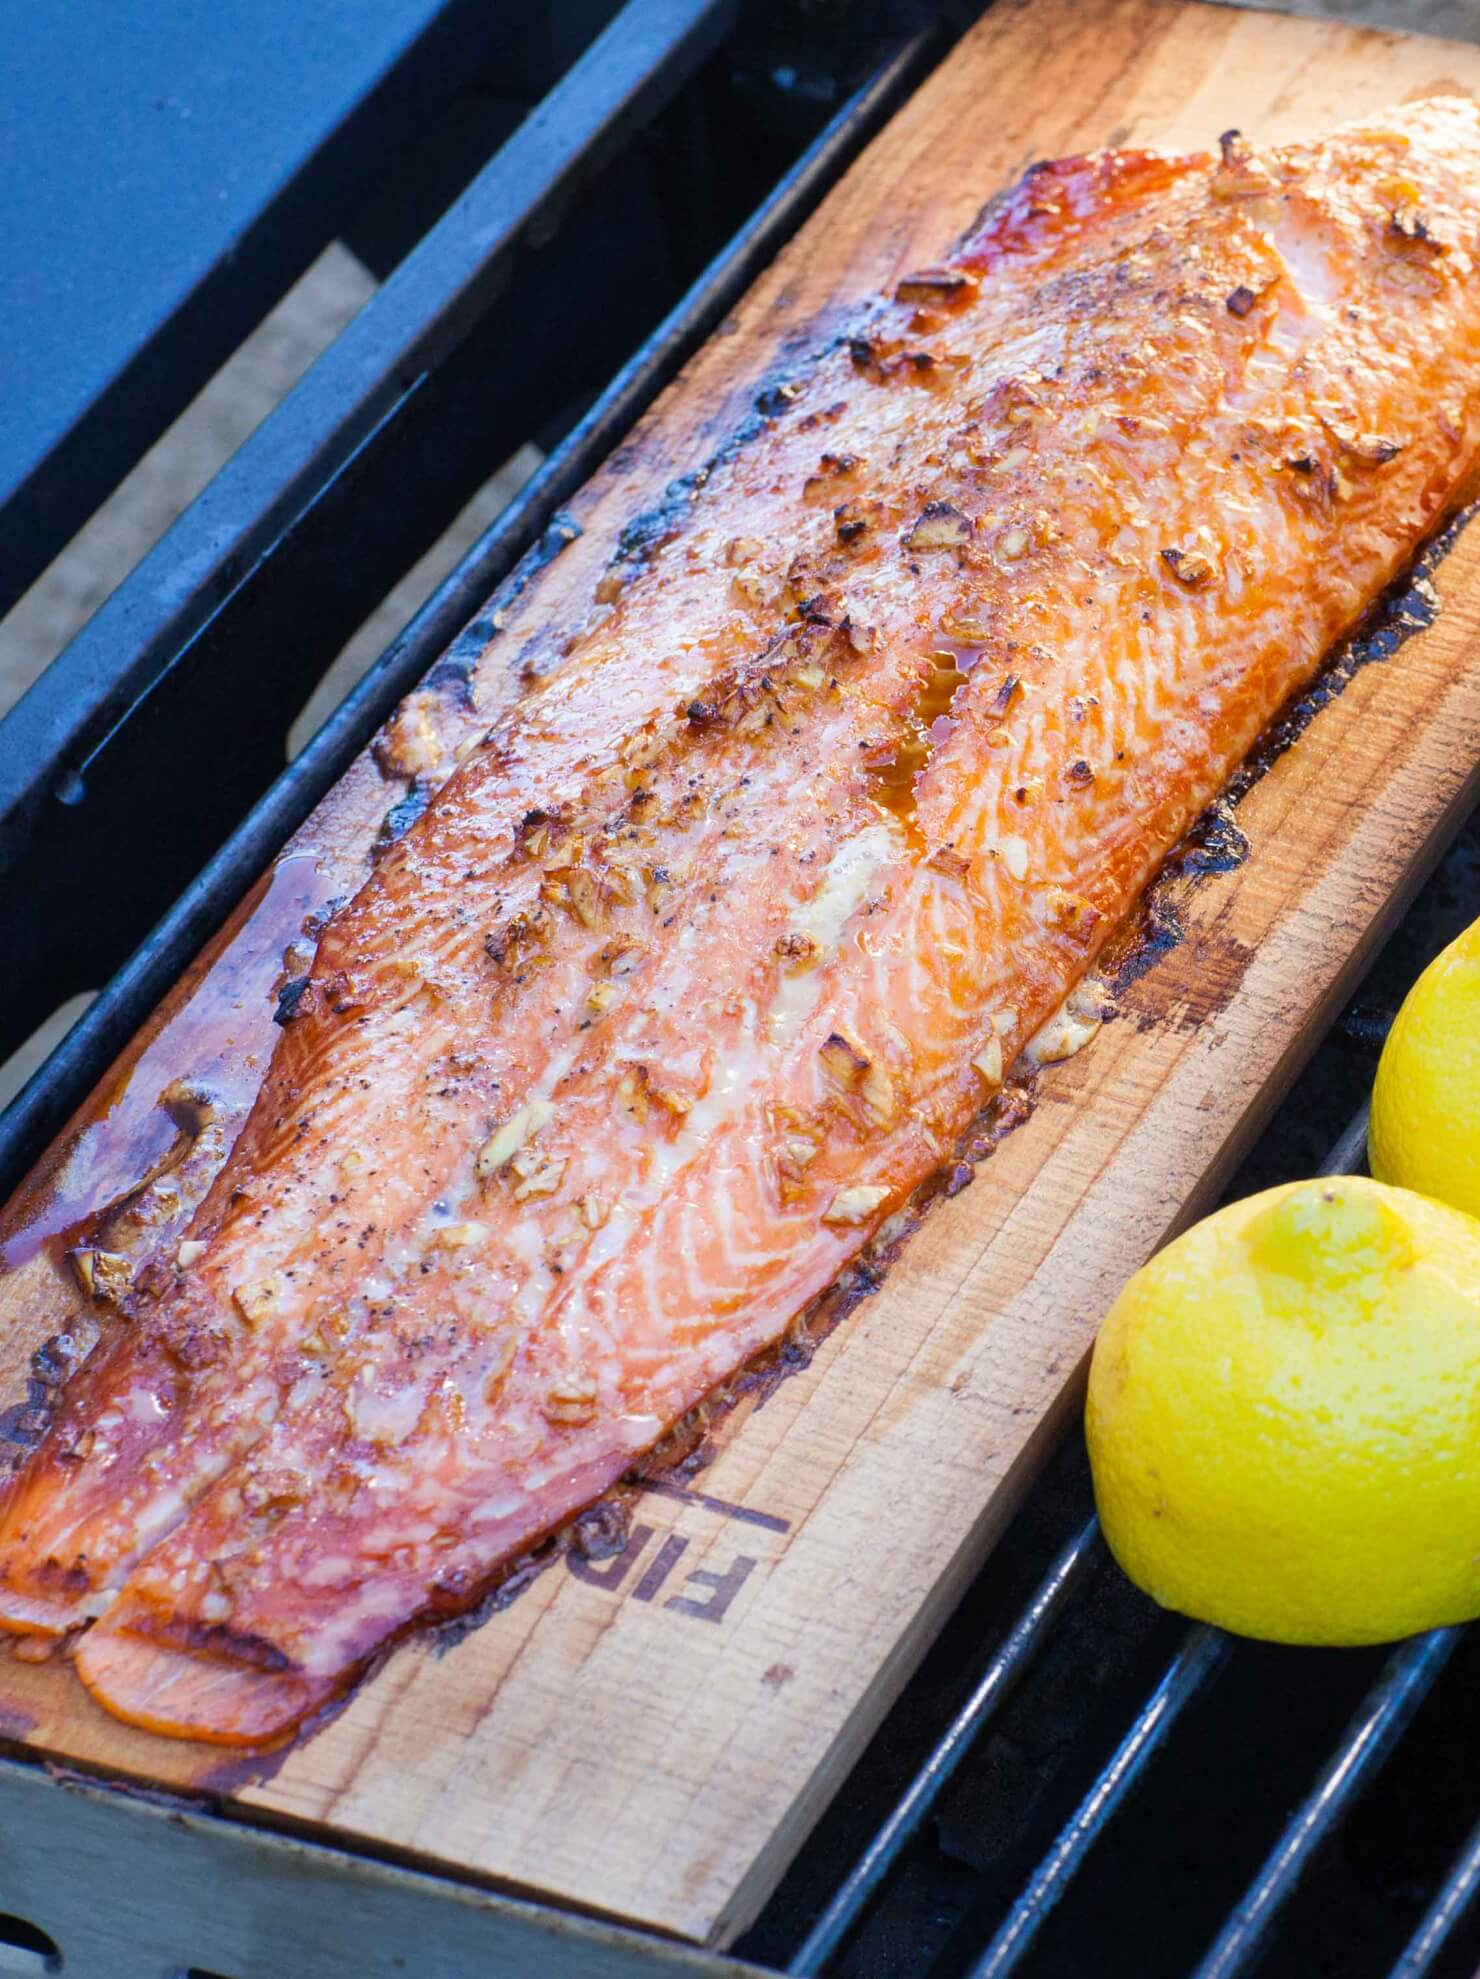 Cedar-Plank Salmon with Garlic Glaze